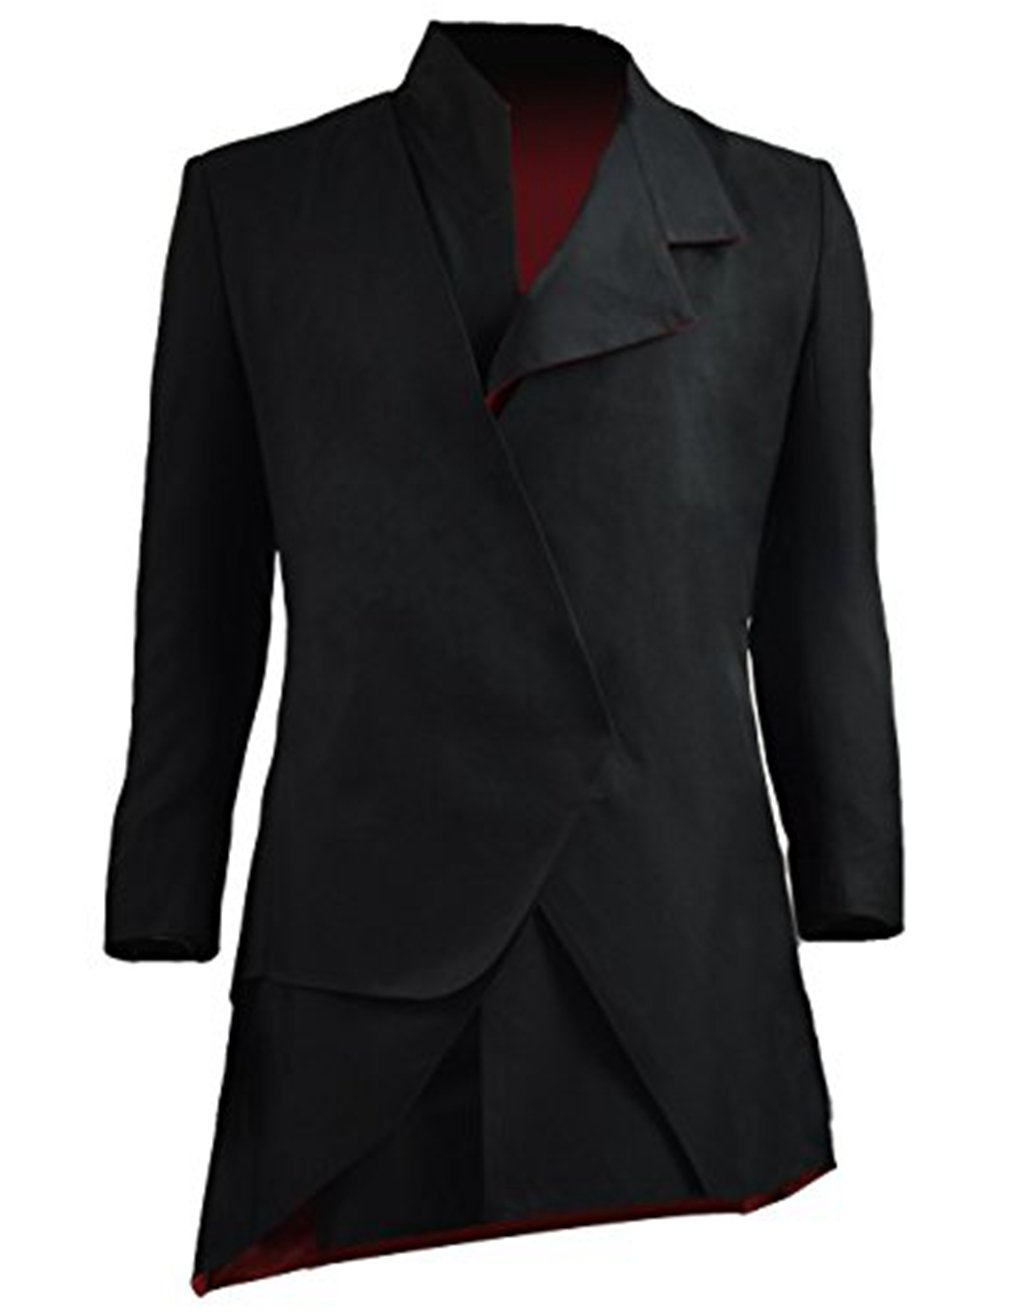 Men Slim Fit Suit Doctor Master Cosplay Halloween Costumes (XX-Large, Black) by Costume Party Heart